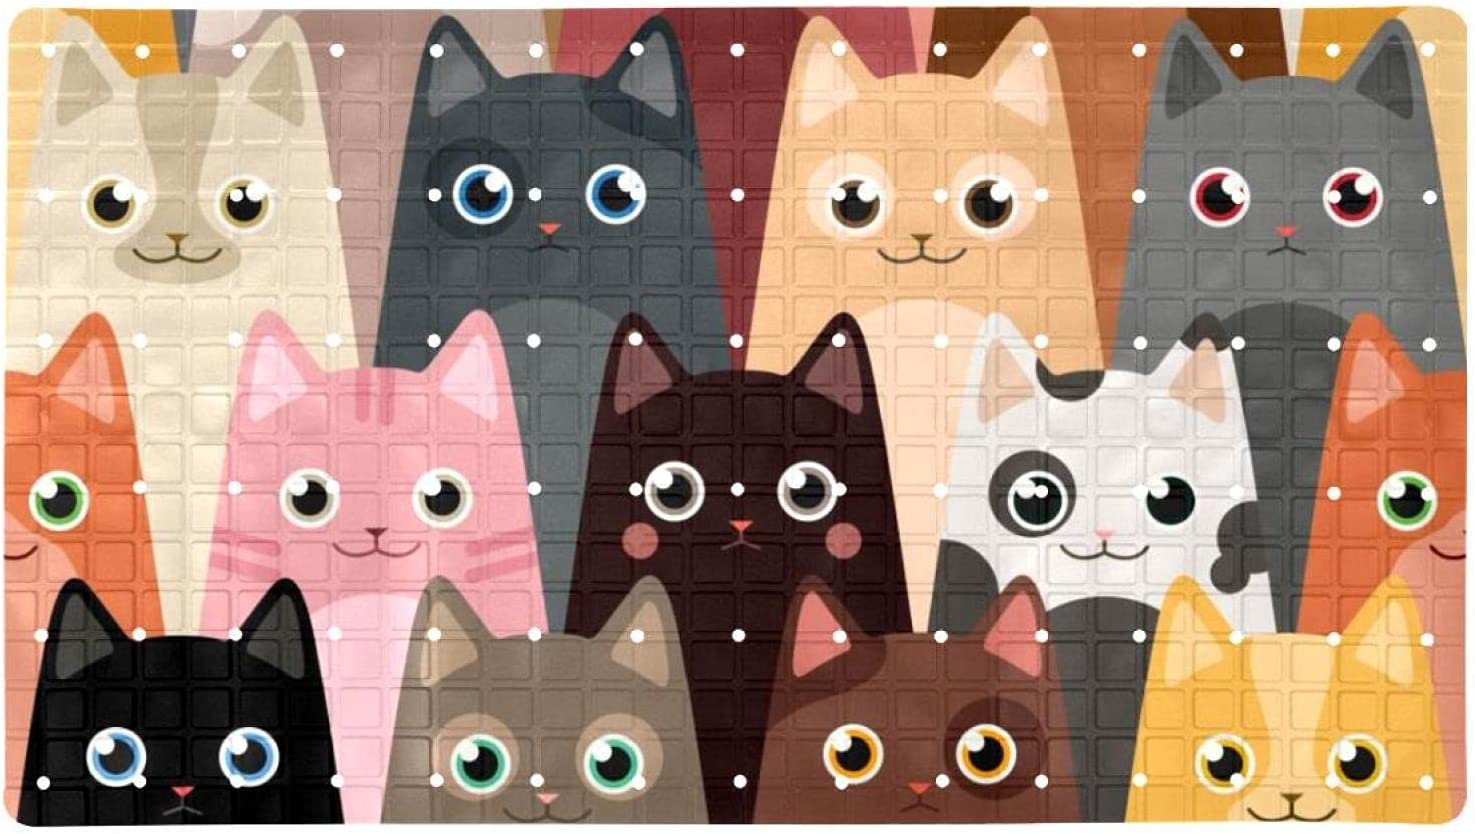 Bath Tub Shower Cheap Cheap mail order specialty store bargain Mat 15.7x27.9 inches Ant Suction with Cats Print